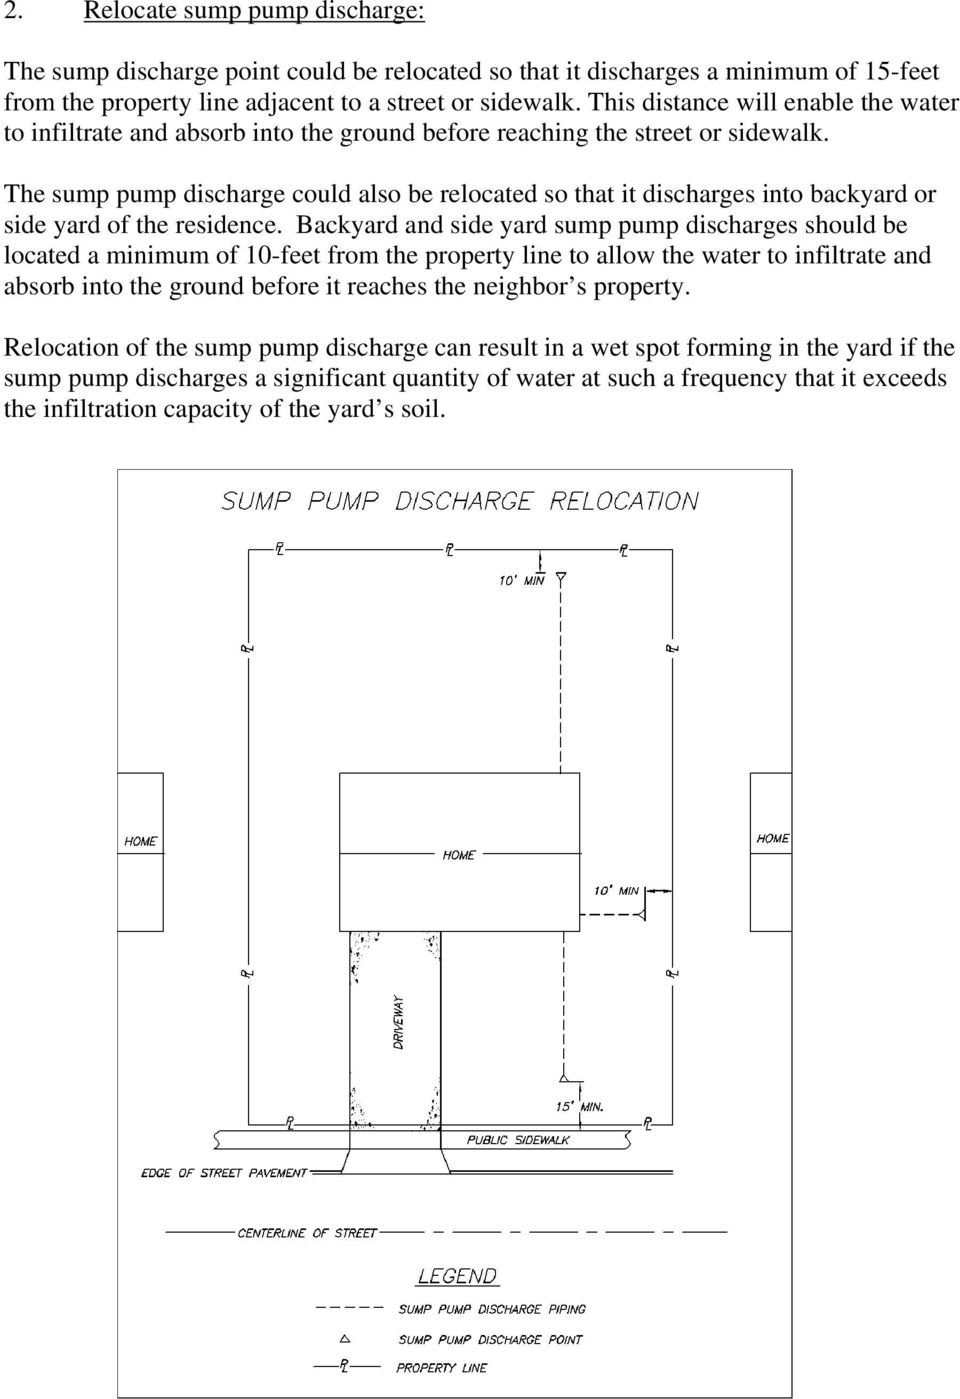 Sump Pump Discharges Informational Packet Pdf French Drain To Diagram The Discharge Could Also Be Relocated So That It Into Backyard Or Side